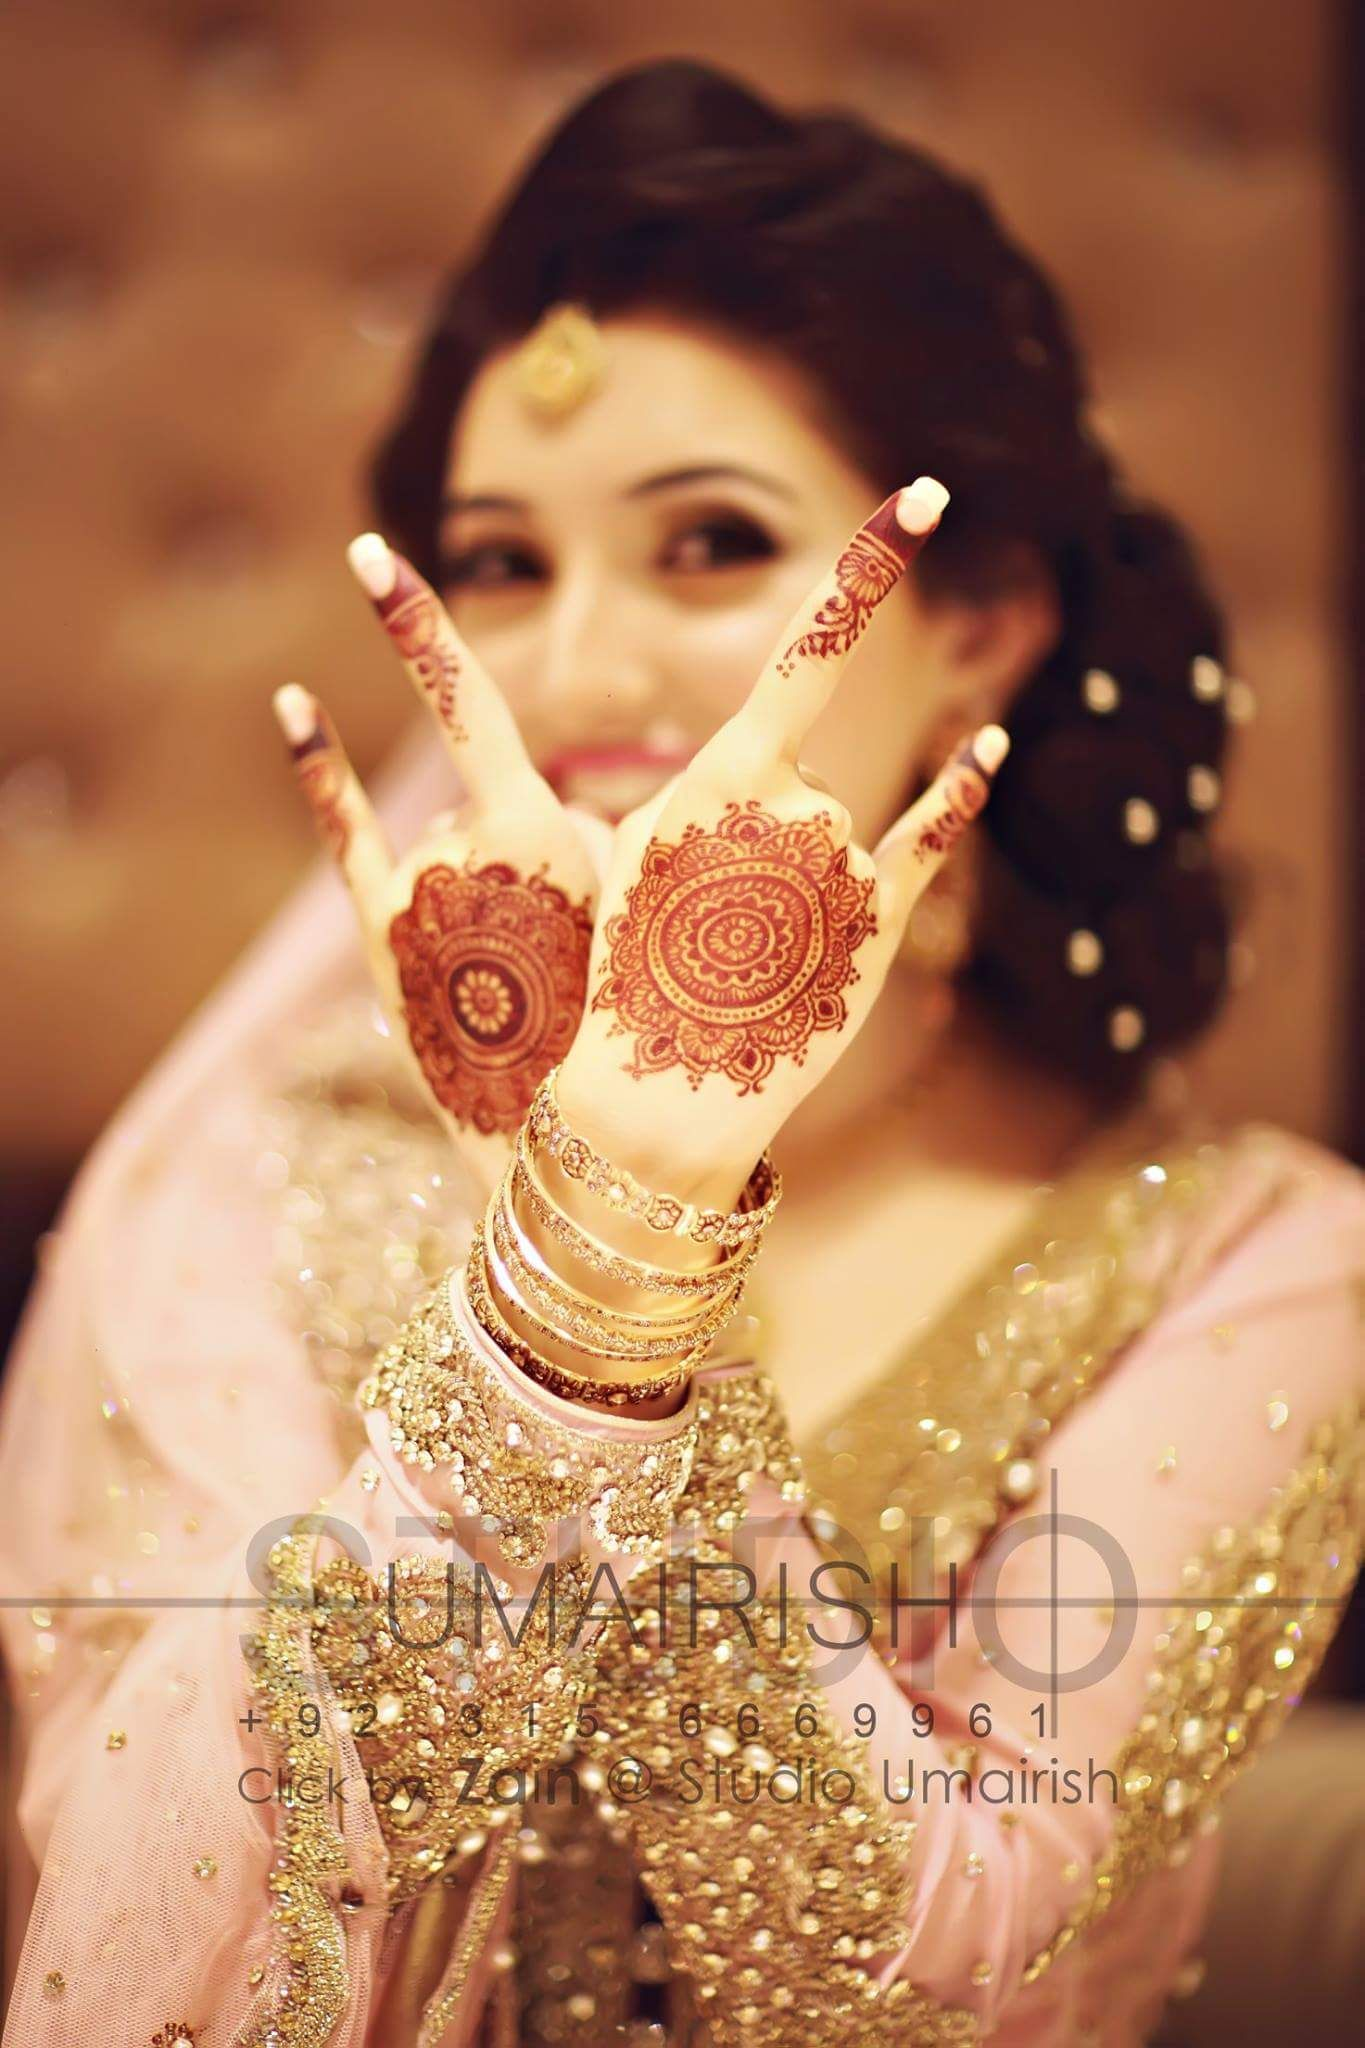 Umairish Studio Photography Mehndi Designs Beautiful Mehndi Design Eid Mehndi Designs